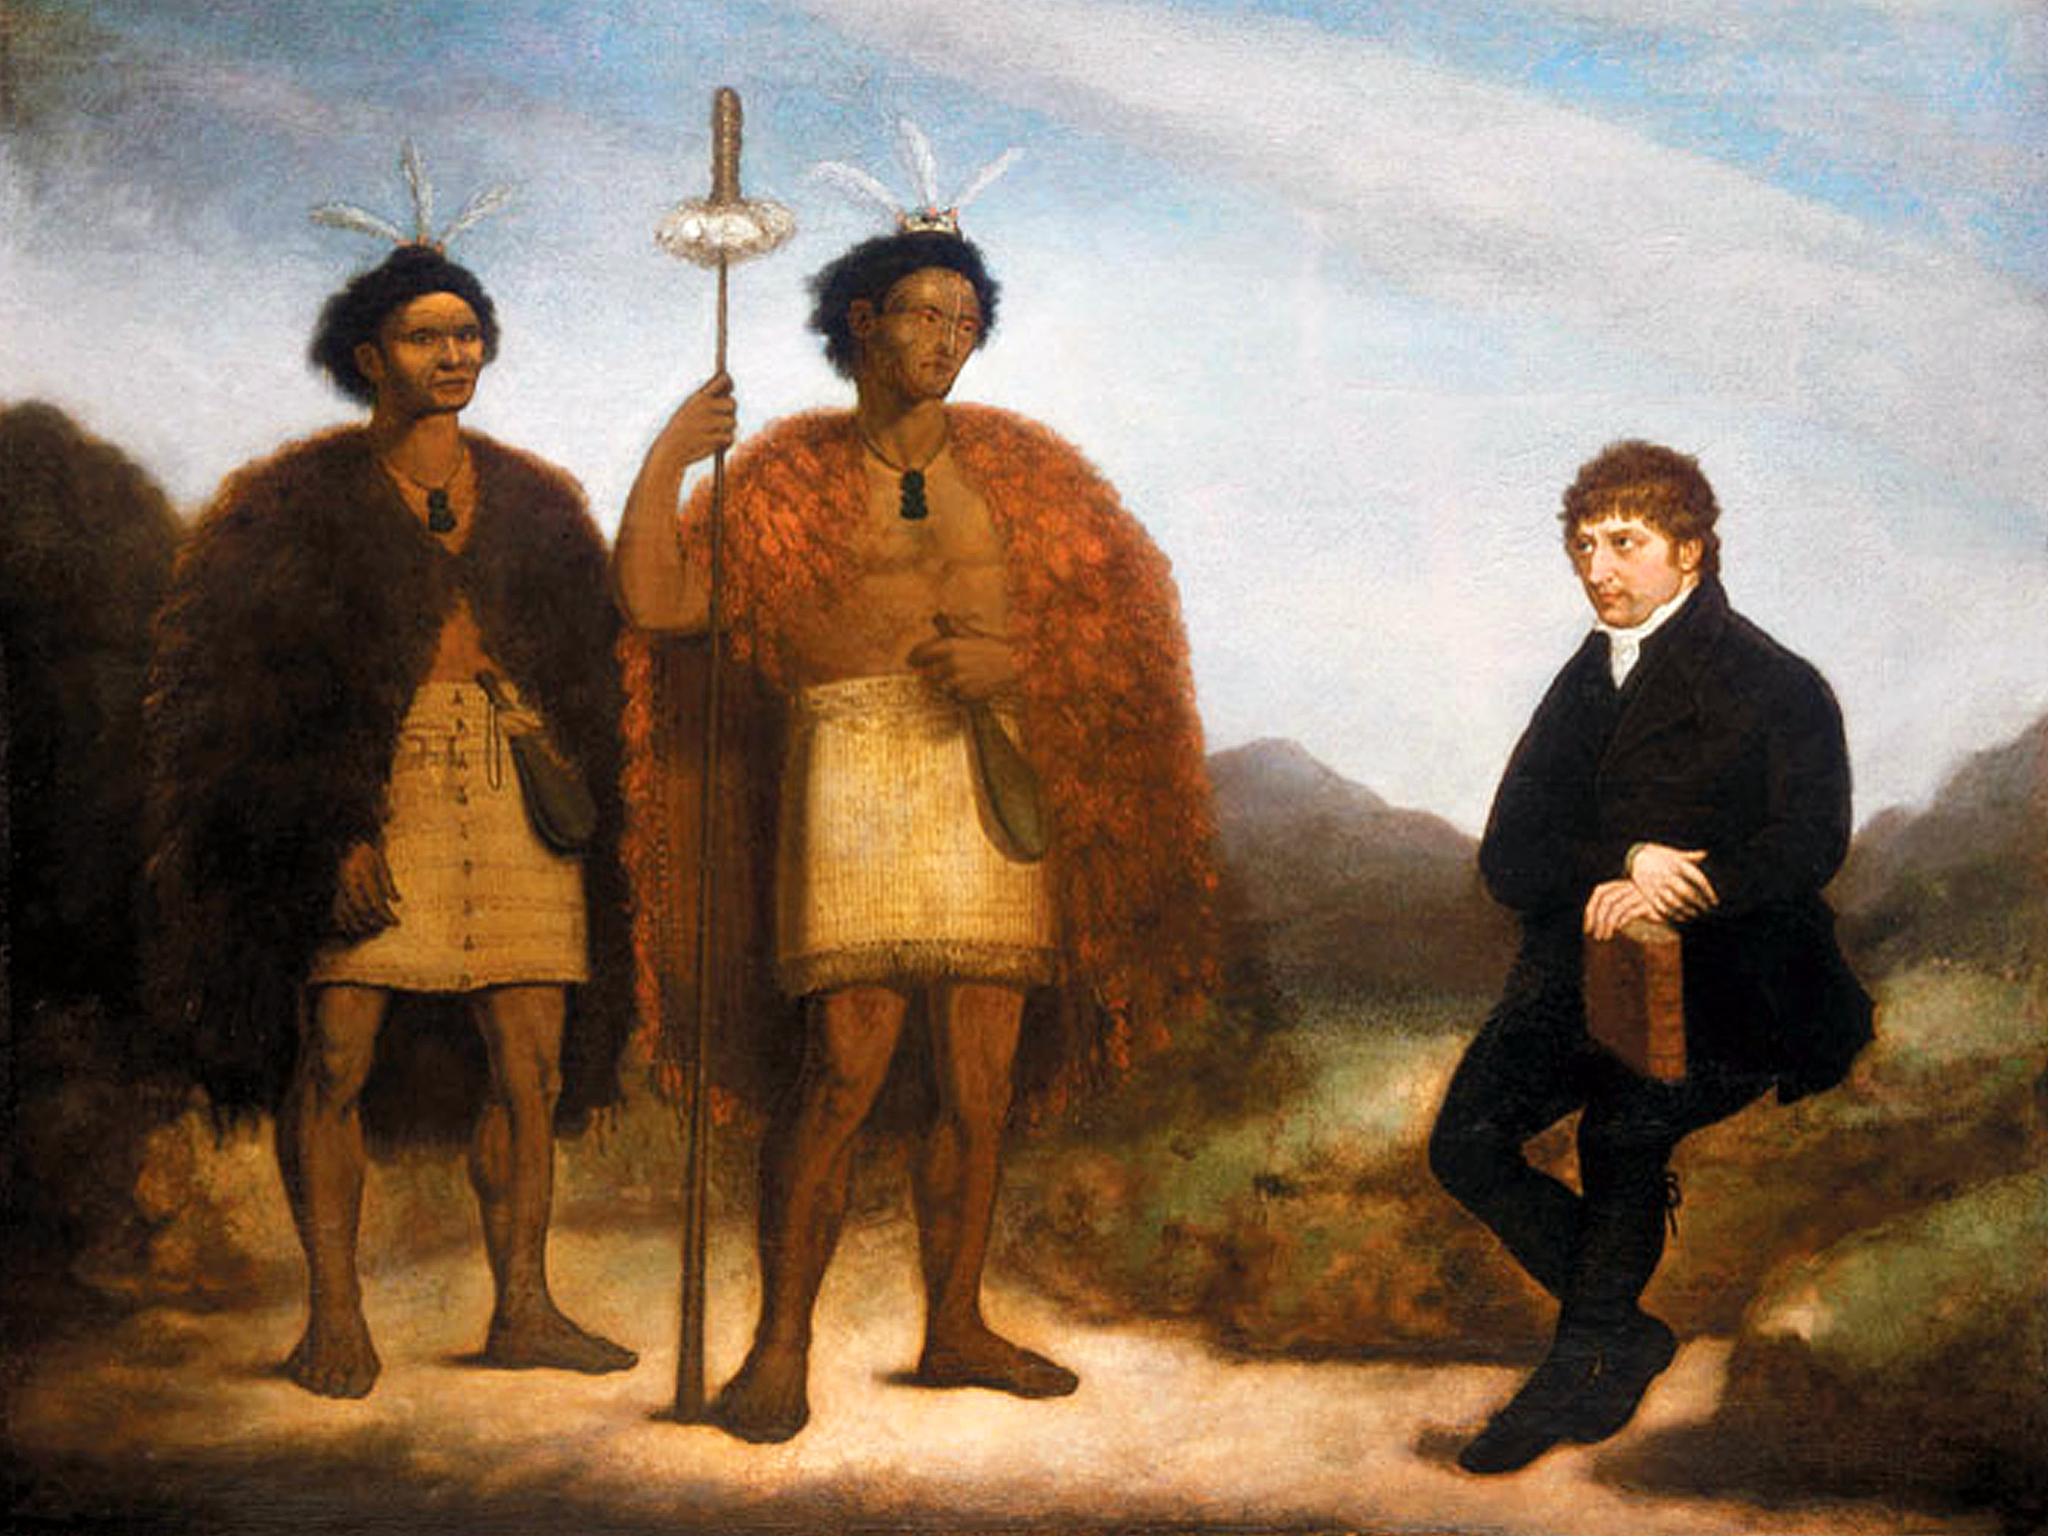 IMAGE: The chiefs Waikato and Hongi Hika with missionary Thomas Kendall in England, oil painting by James Barry (1820). National Library of New Zealand Te Puna Mātauranga o Aotearoa, Alexander Turnbull Library, Wellington (Ref:G-618)